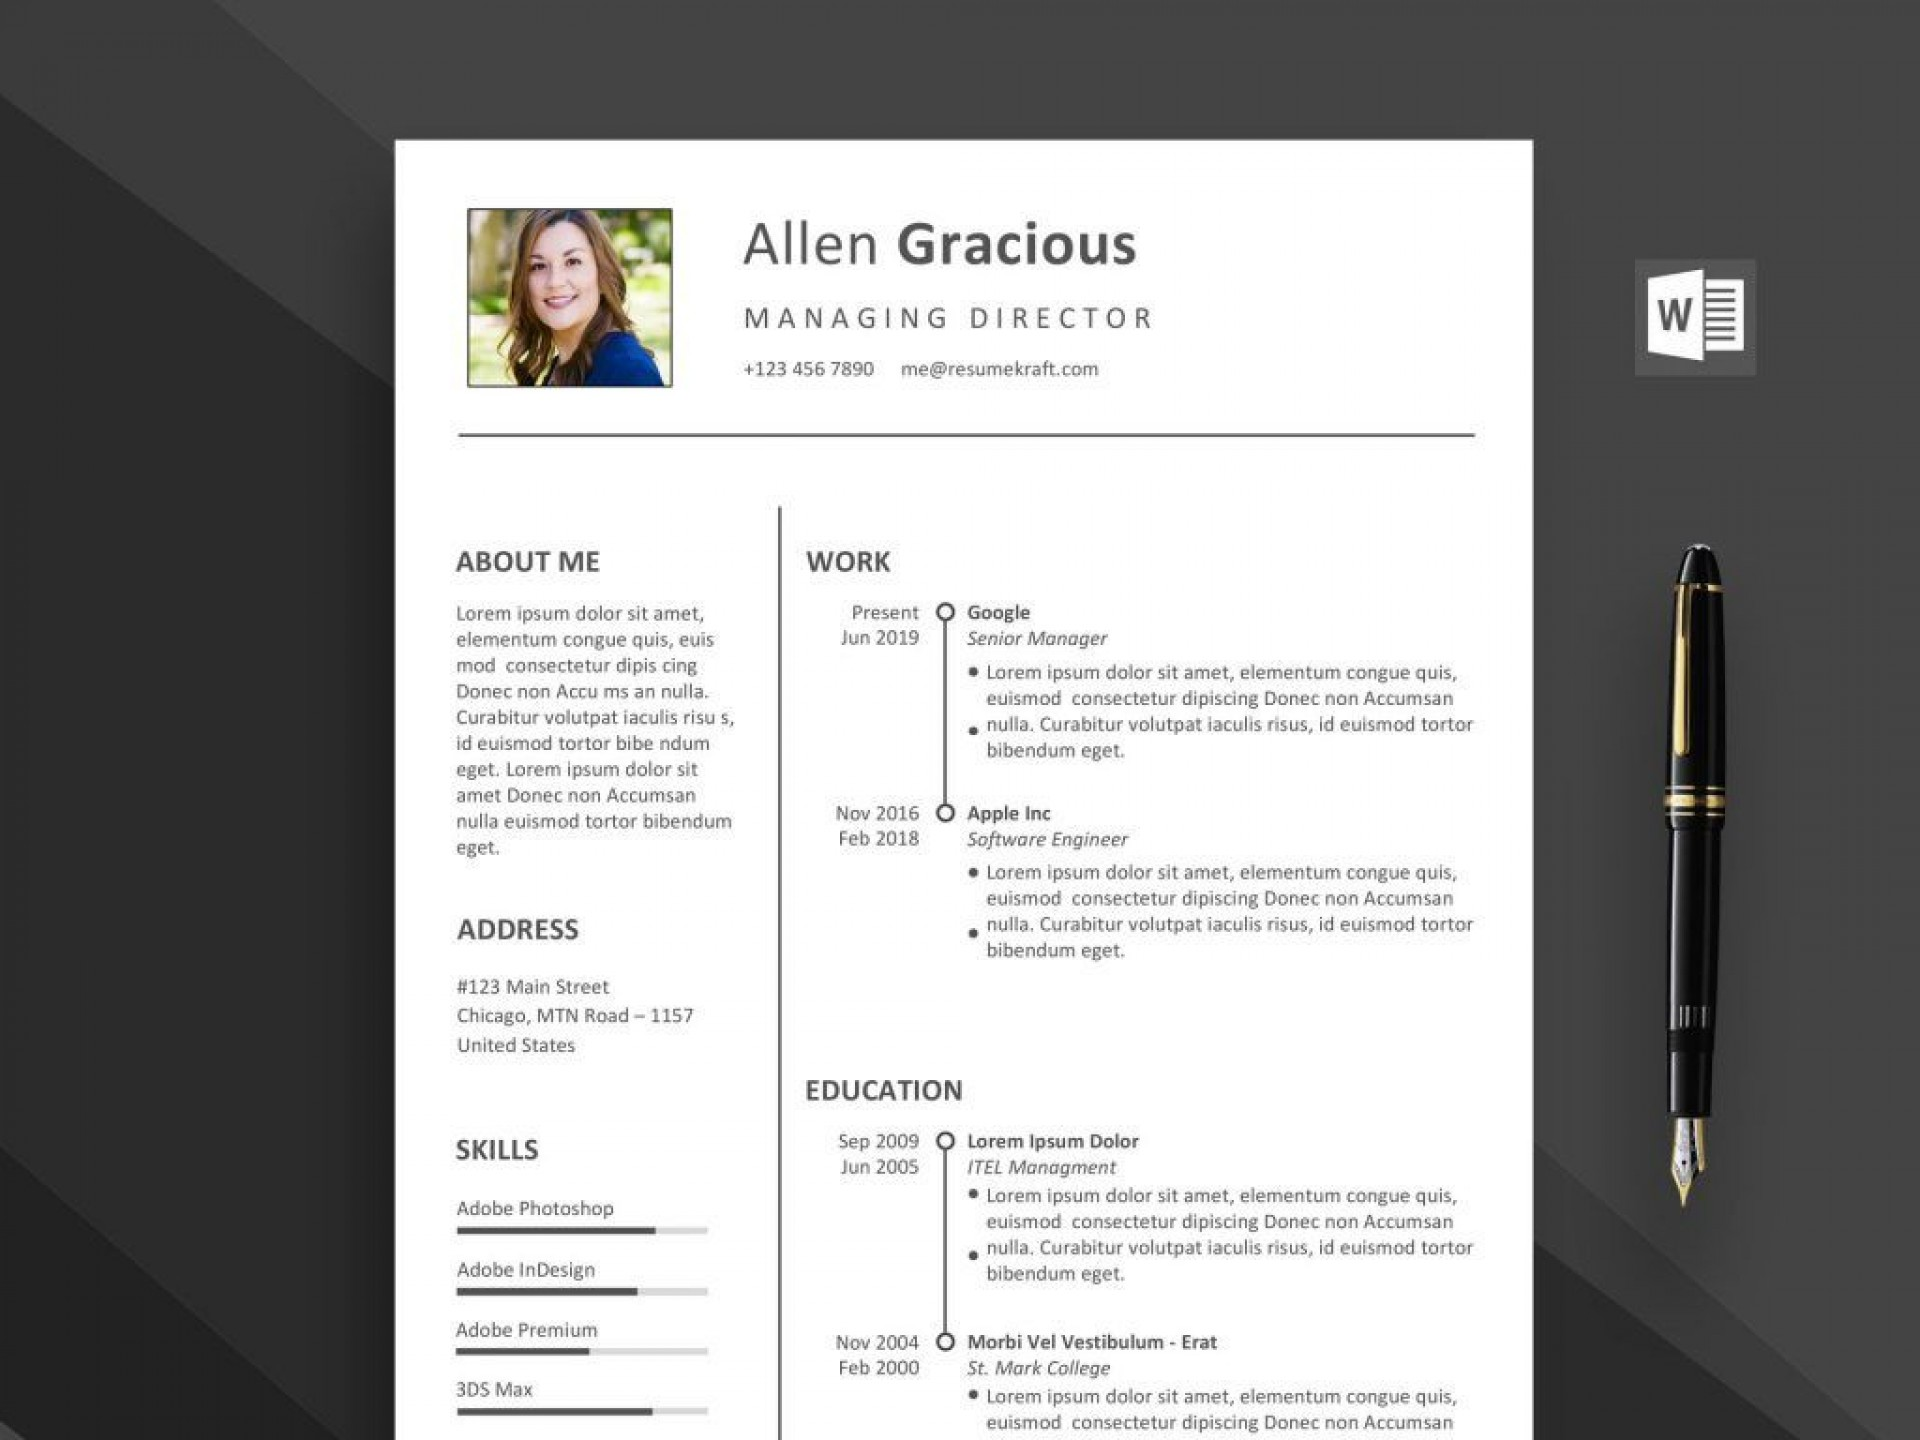 002 Incredible Resume Template Free Word Download Example  Cv With Photo Malaysia Australia1920